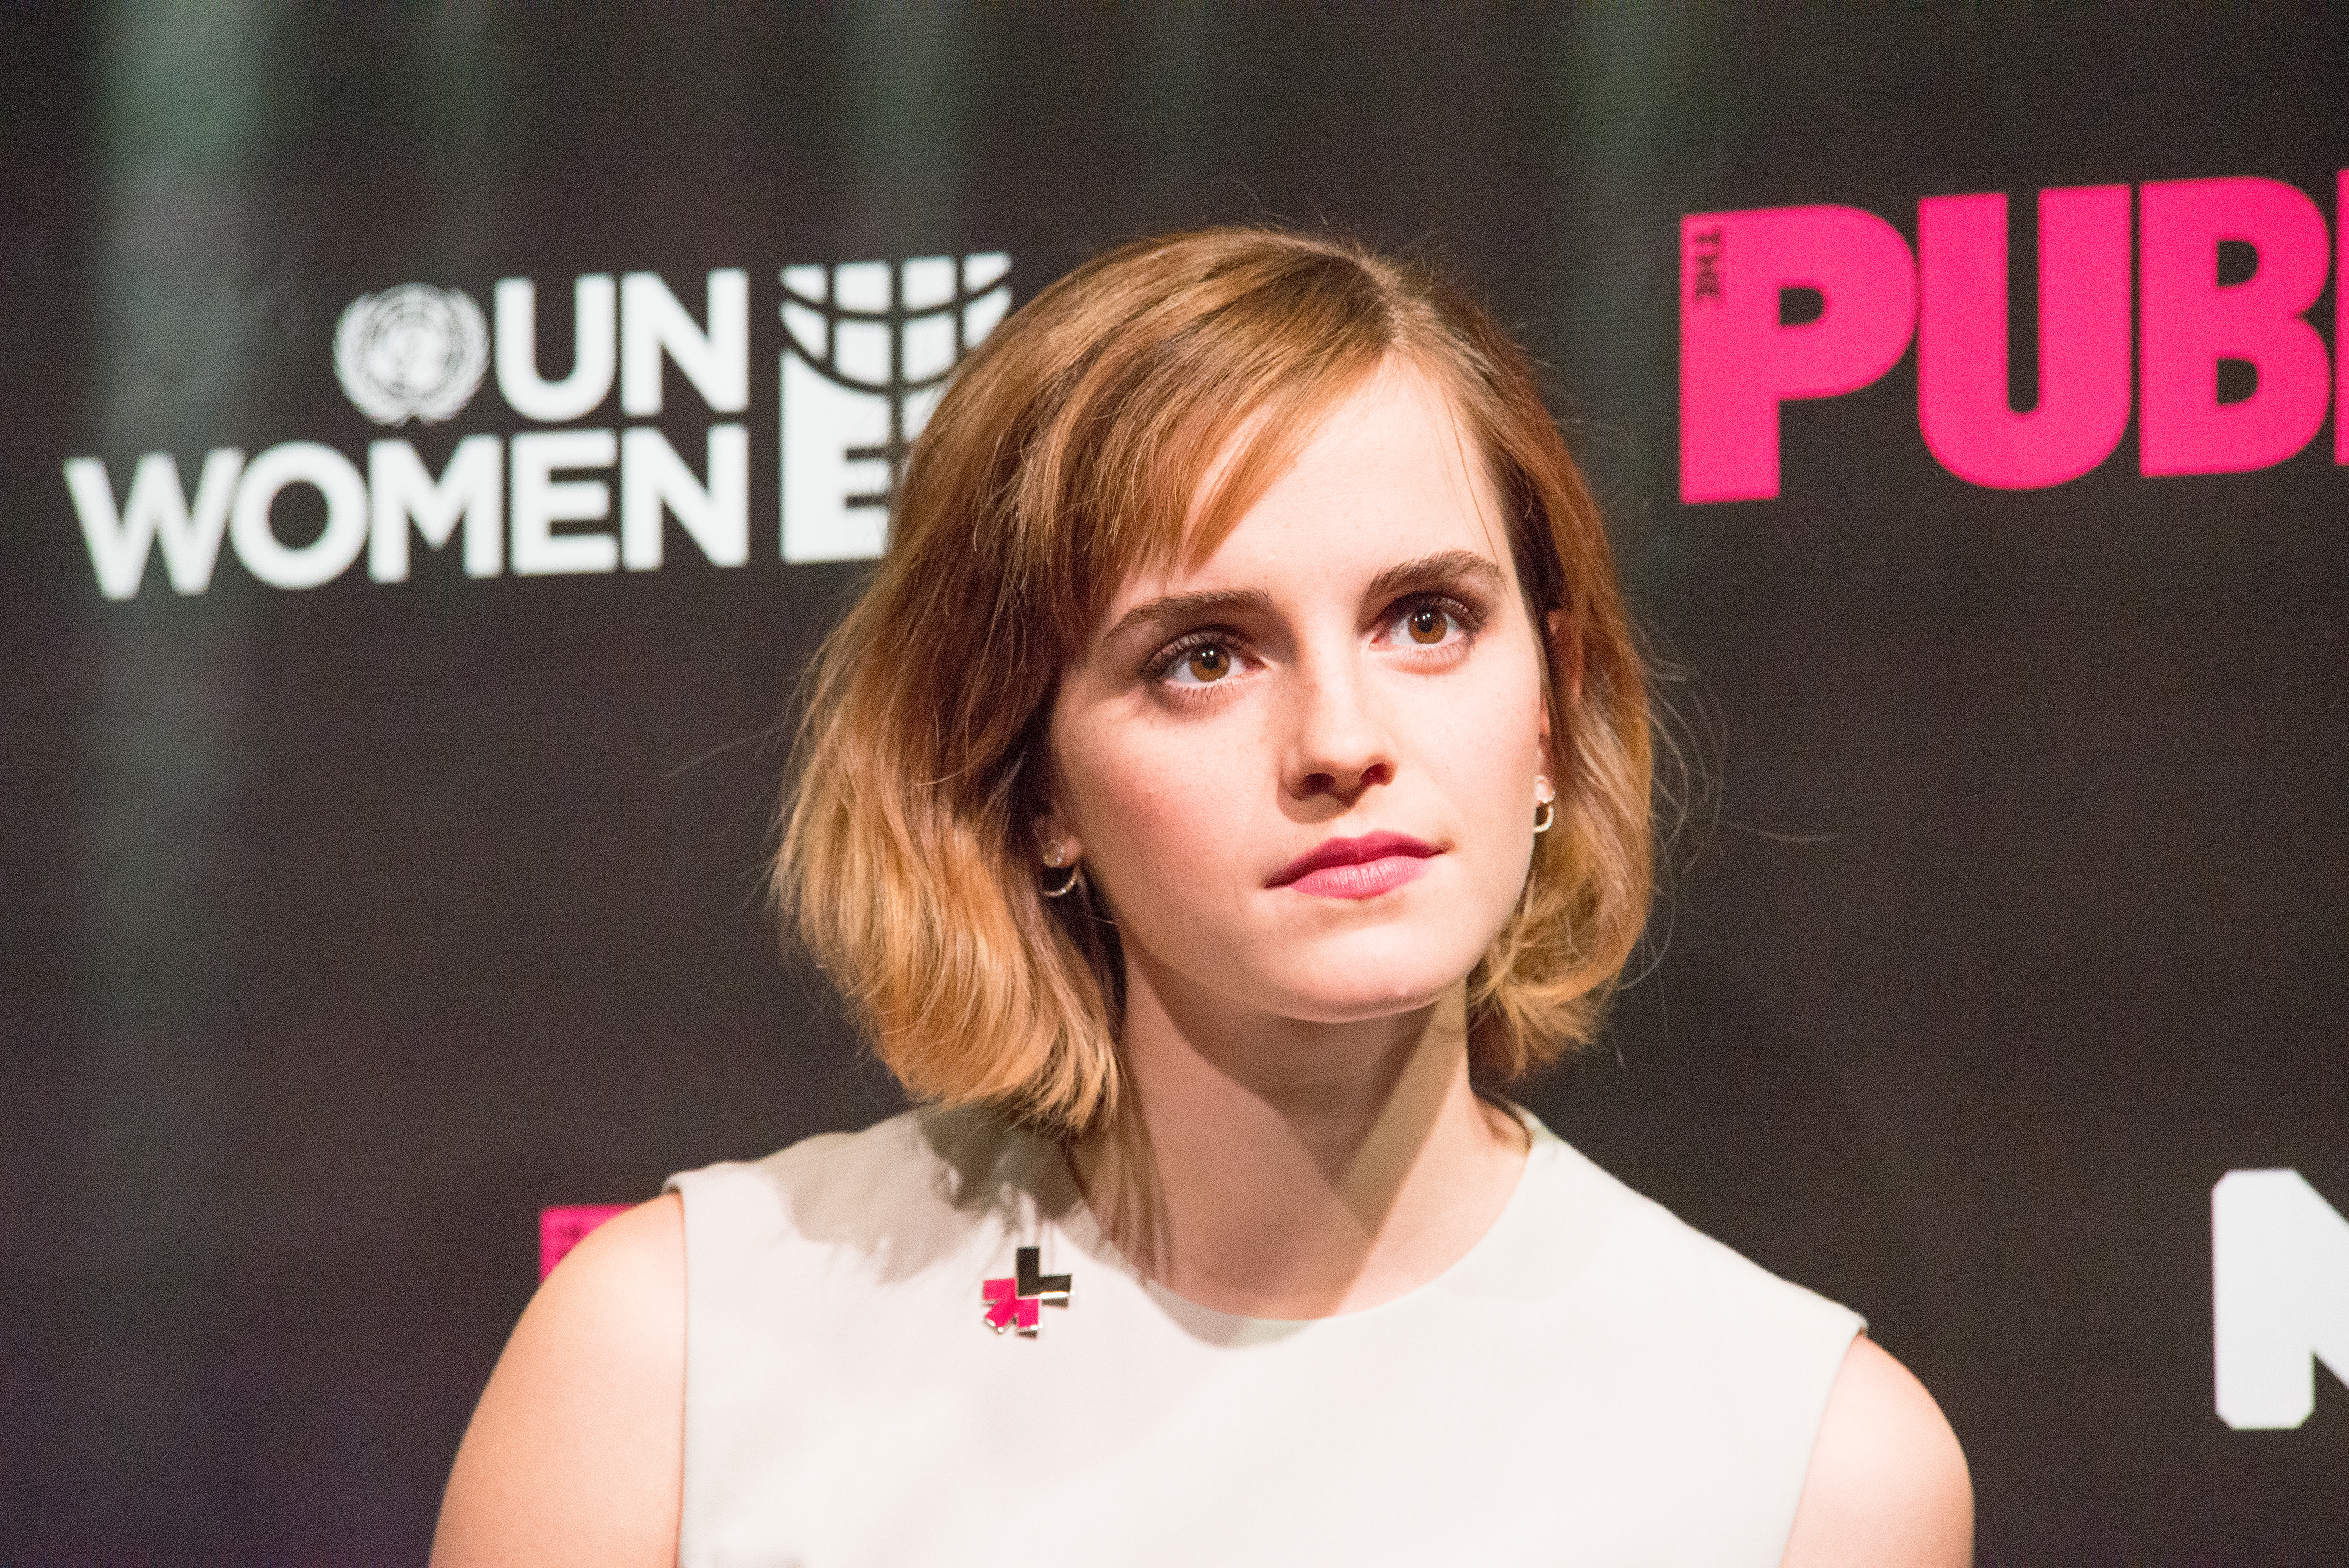 Emma Watson participates in the panel discussion. On International Women's Day, NYC First Lady Chirlaine McCray, UN Women Executive Director Phumzile Mlambo-Ngcuka, Actress and HeForShe advocate Emma Watson and Actor Forest Whitaker participated in a press briefing at Joe's Pub in the East Village of Manhattan for the launch of HeForShe Art Week (March 8-15).